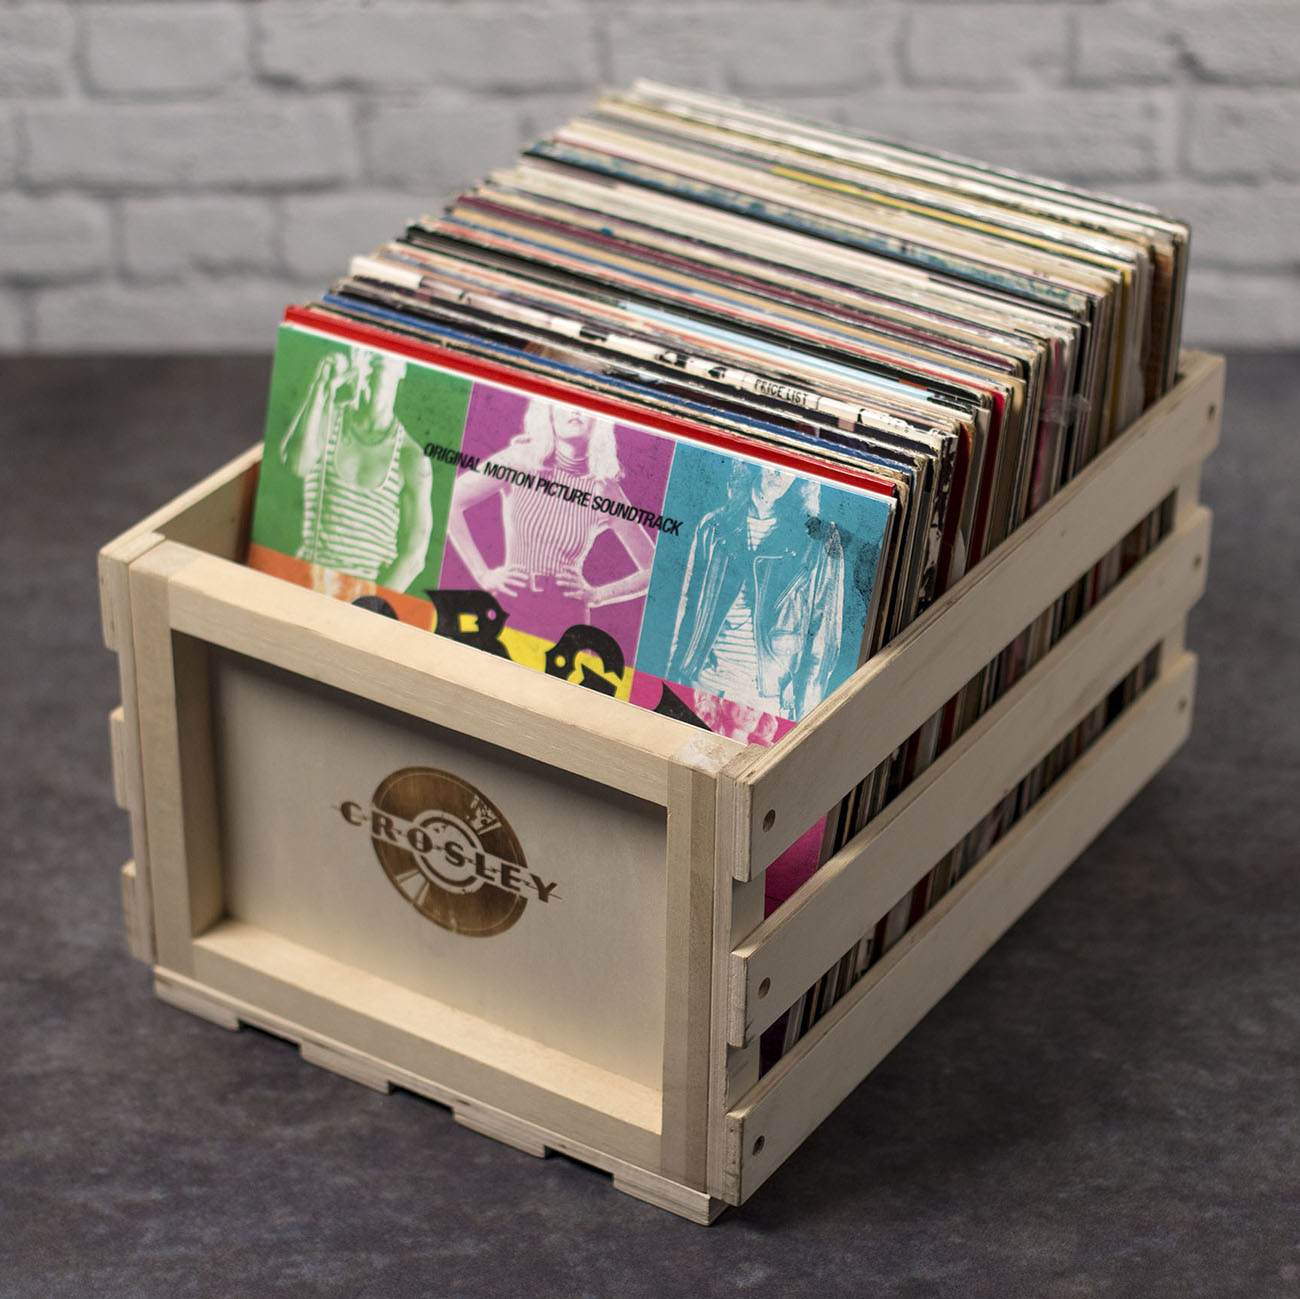 Crosley Wooden Record Storage Crate